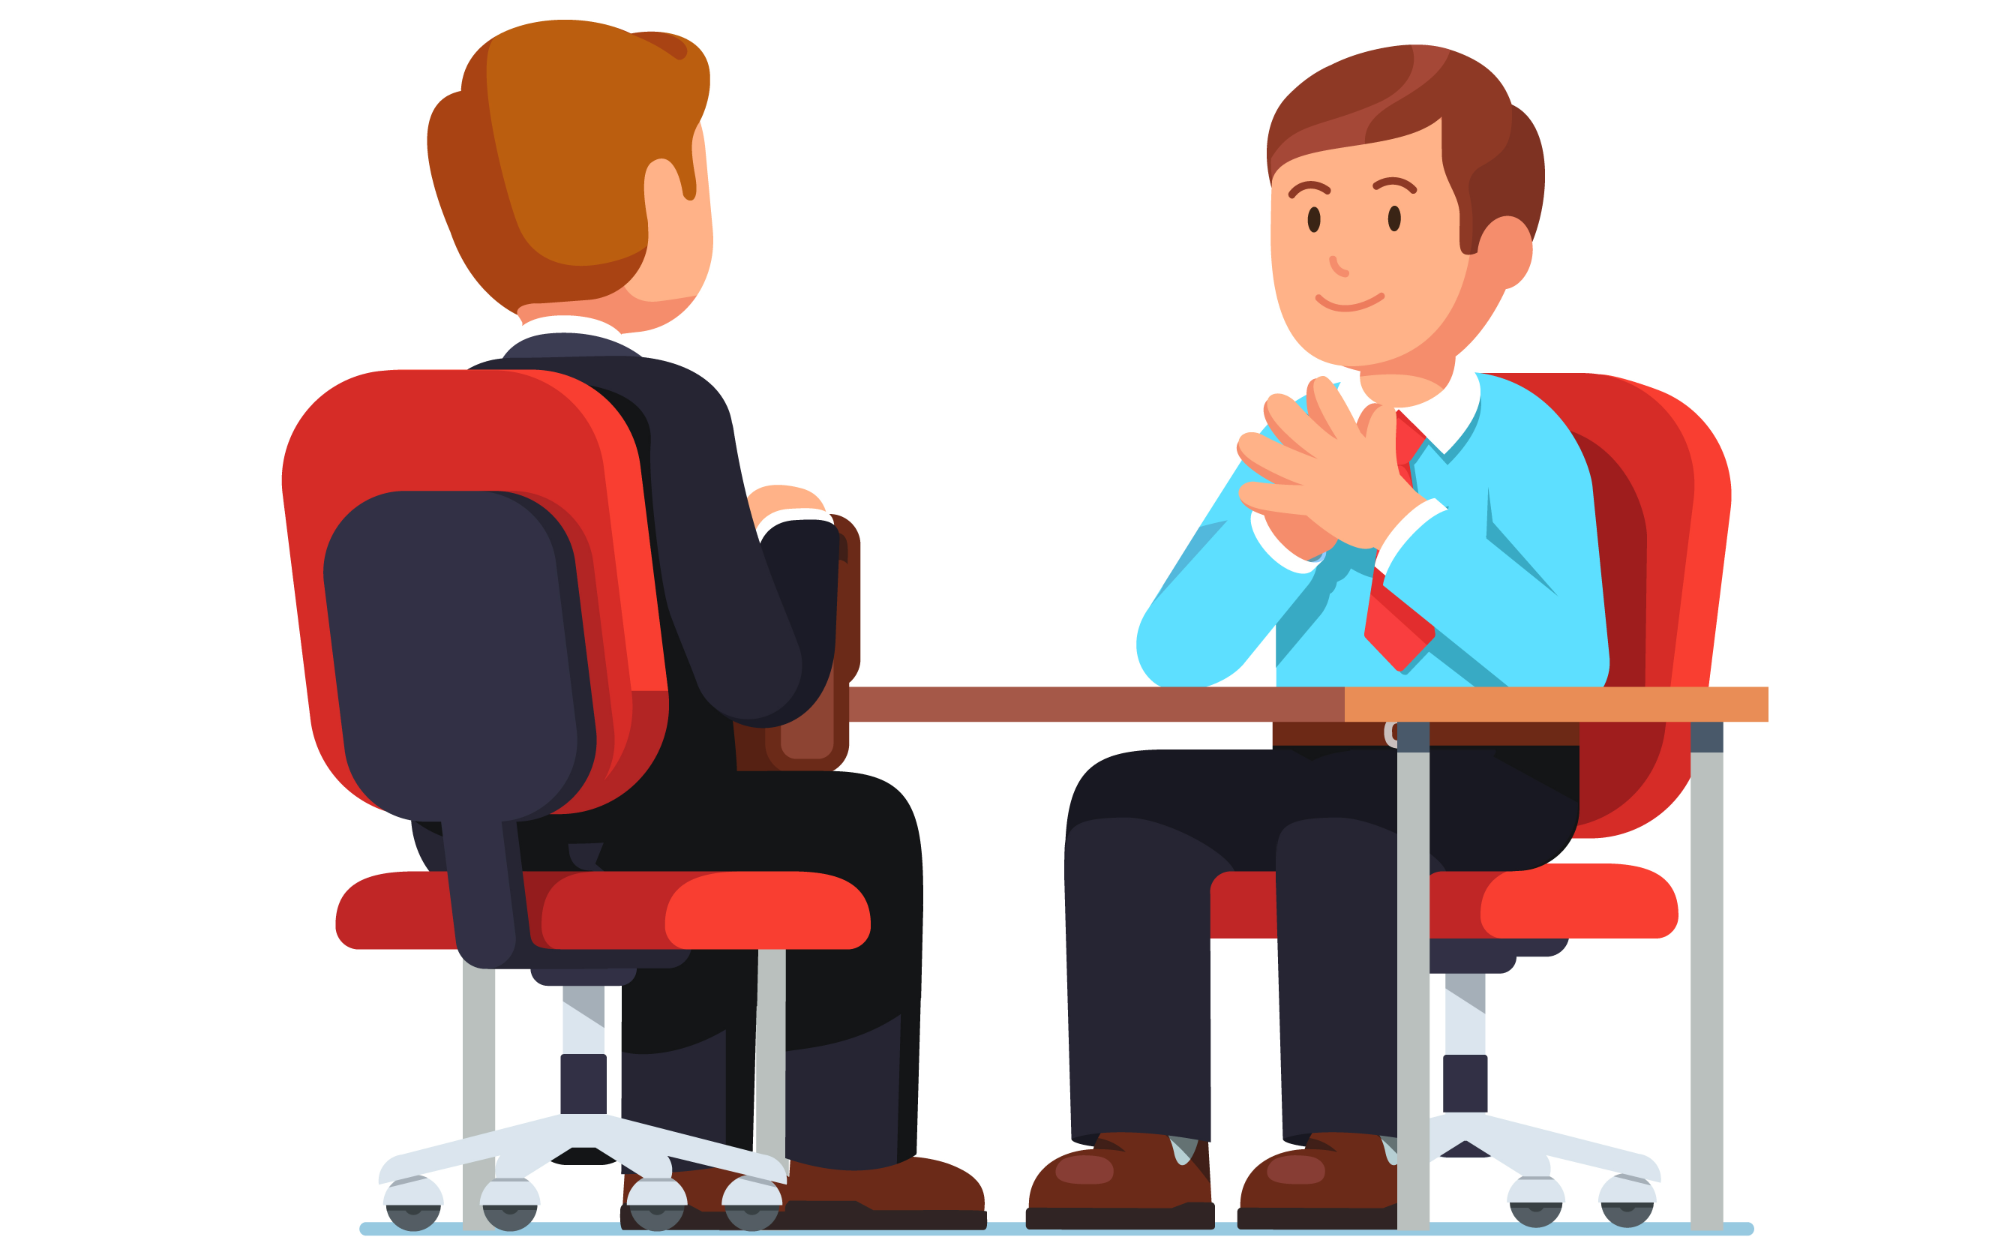 how to crack a job interview, how to crack interview in MNC, interview skills essay, interview skills introduction, how to crack interview question tell me about yourself, इंटरव्यू की तैयारी कैसे करे ! 15 महत्वपूर्ण टिप्स, How To Prepare For Job Interview In Hindi